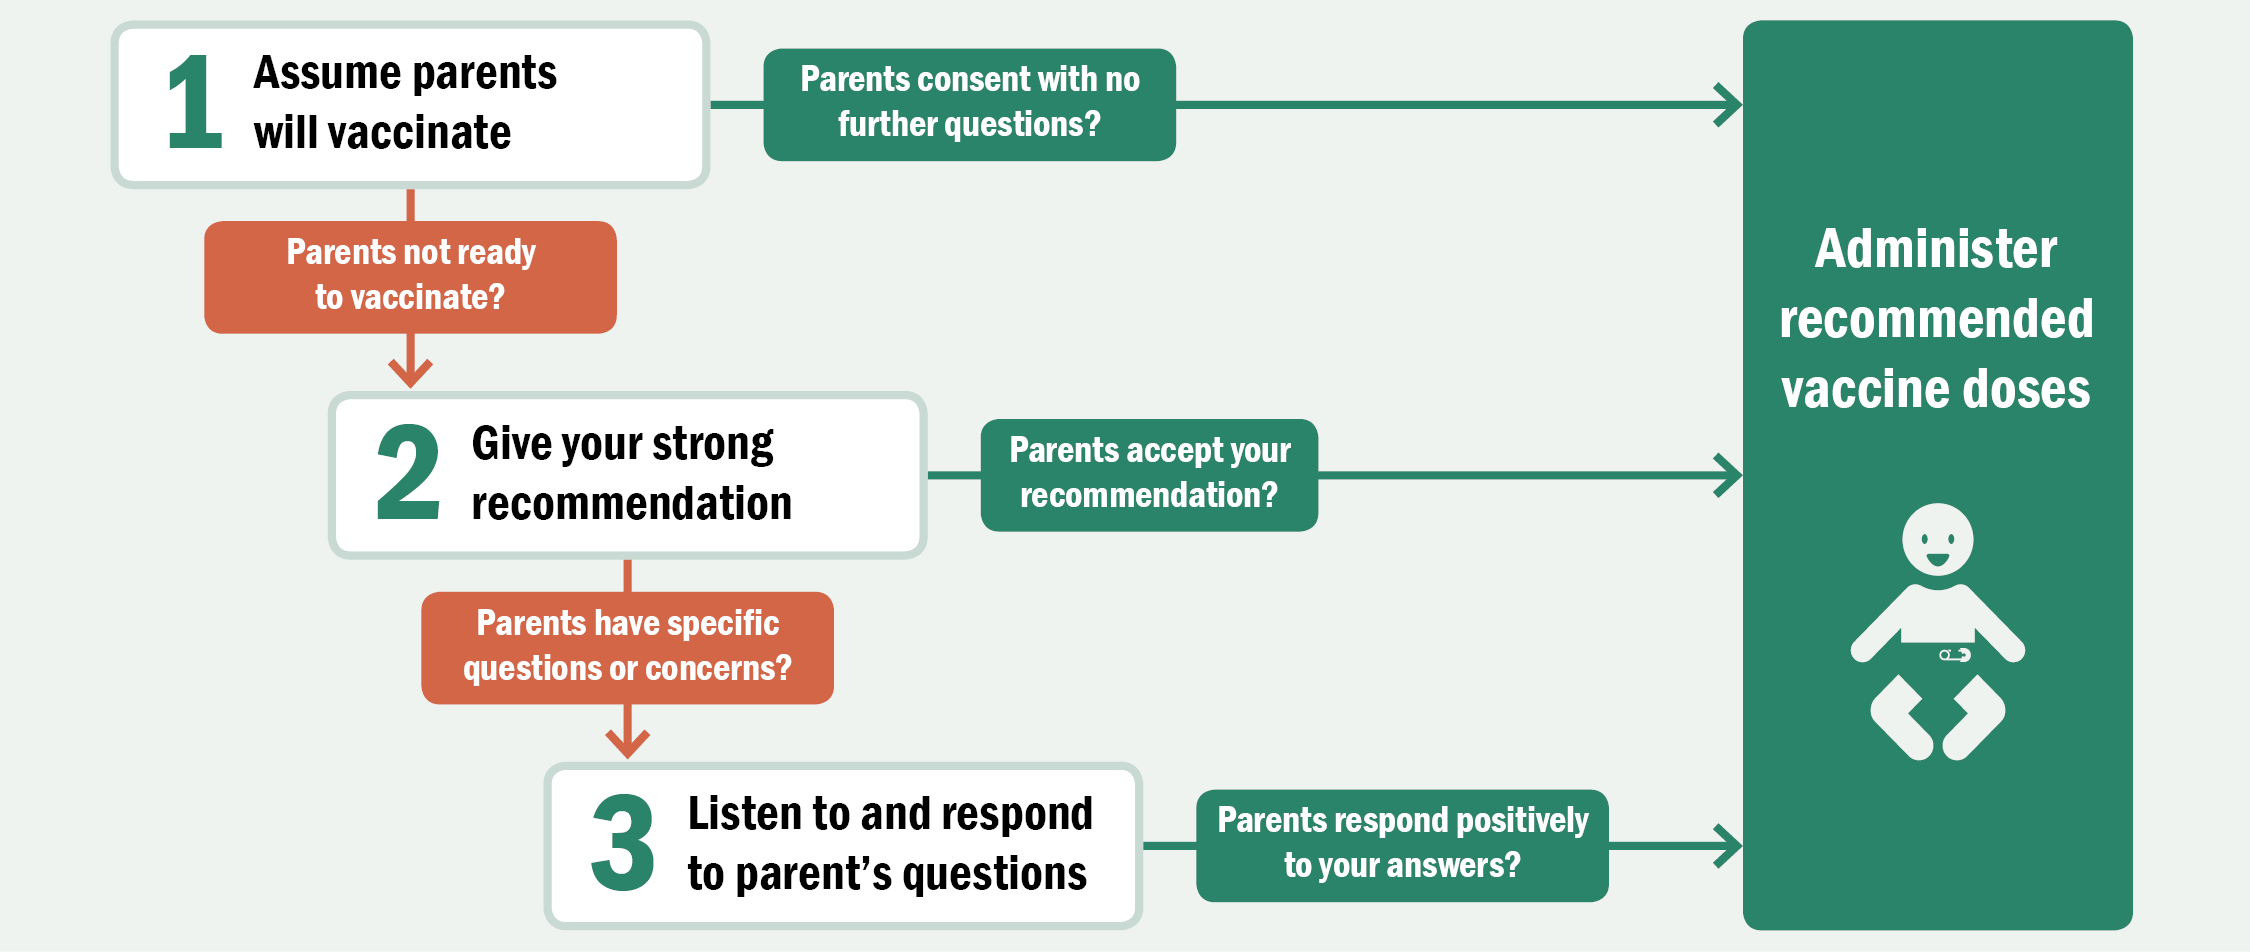 Flow chart describing steps to take when talking with parents about vaccines: Step one, Assume parents will vaccinate. If parents consent with no further questions, then administer recommended vaccine doses. If parents are not ready to vaccinate then, Step two, Give your strong recommendation. If parents accept your recommendation, then administer recommended vaccine doses. If parents have specific questions or concerns then, Step three, Listen to and respond to parent's questions. If parents respond positively to your answers, then administer recommended vaccine doses.